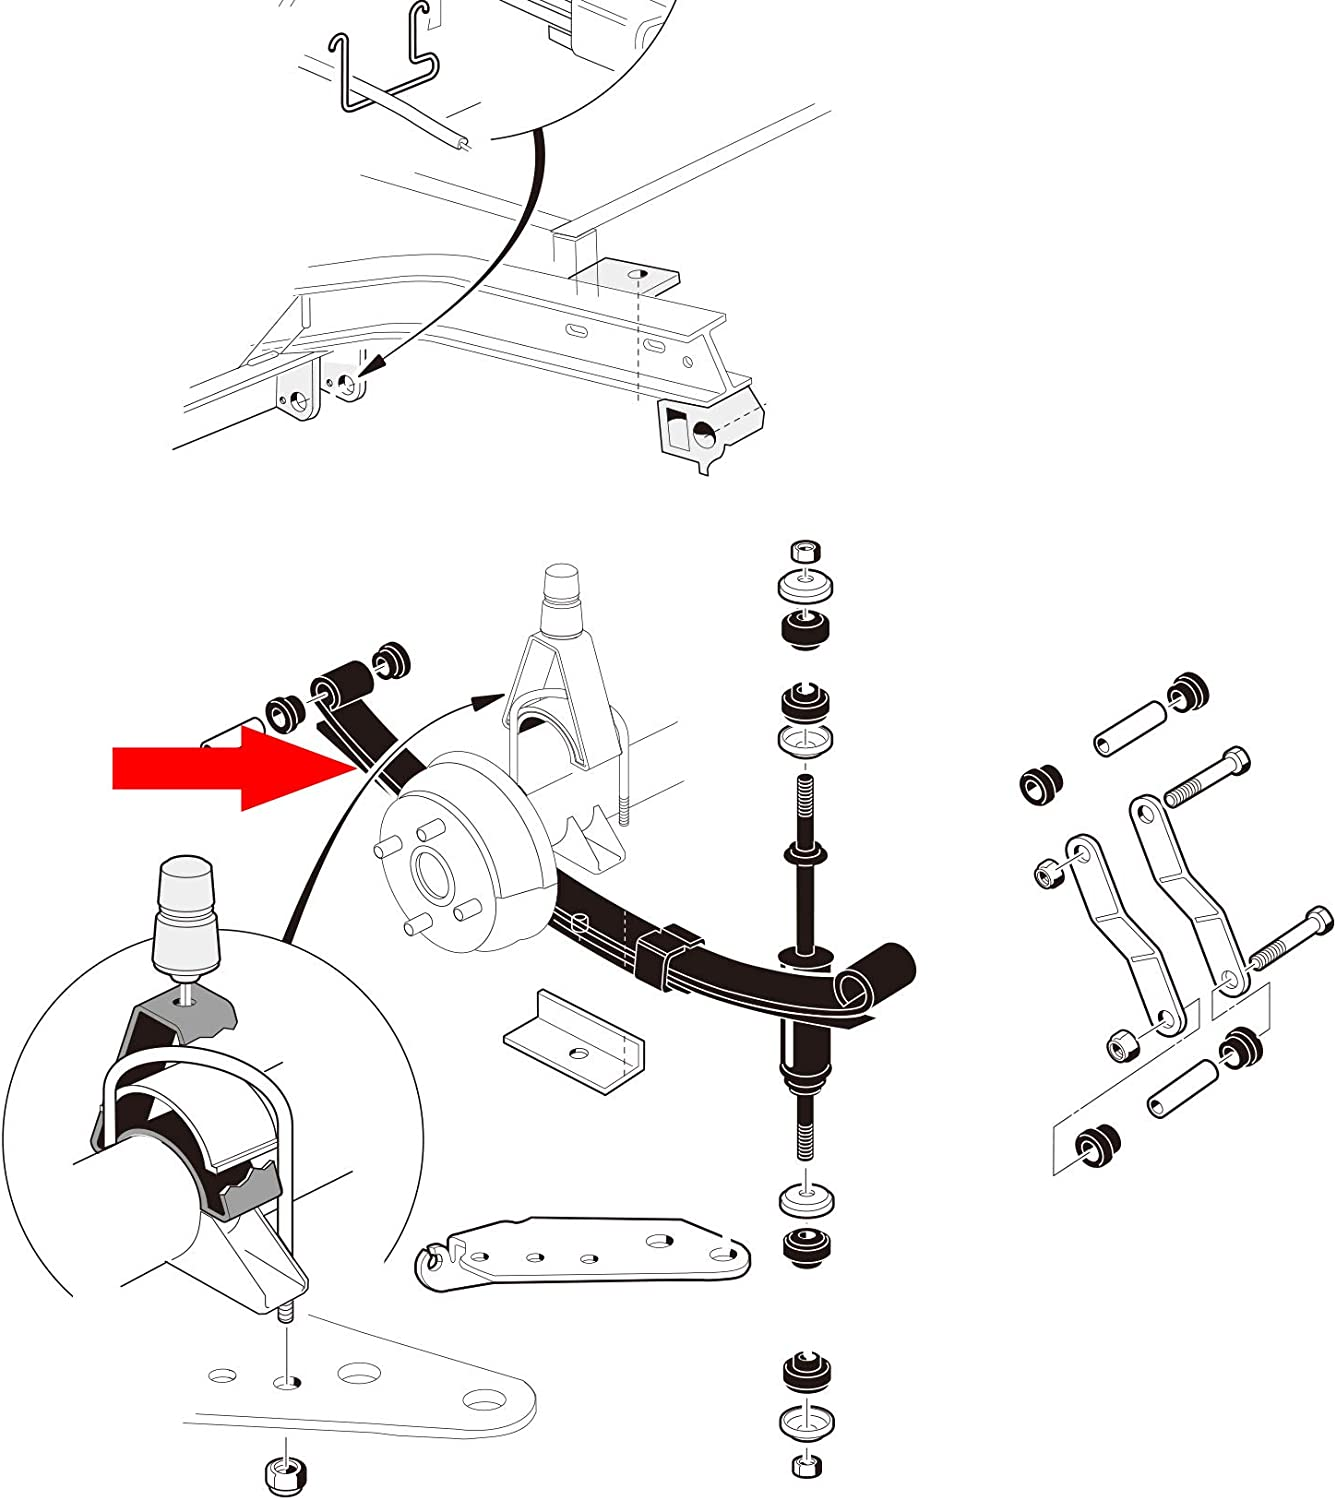 10L0L DS Heavy Duty Rear 3-Leaf Spring Kit with Bushings /& Sleeves for DS Heavy Duty Rear 3-Leaf Spring Kit with Bushings /& Sleeves